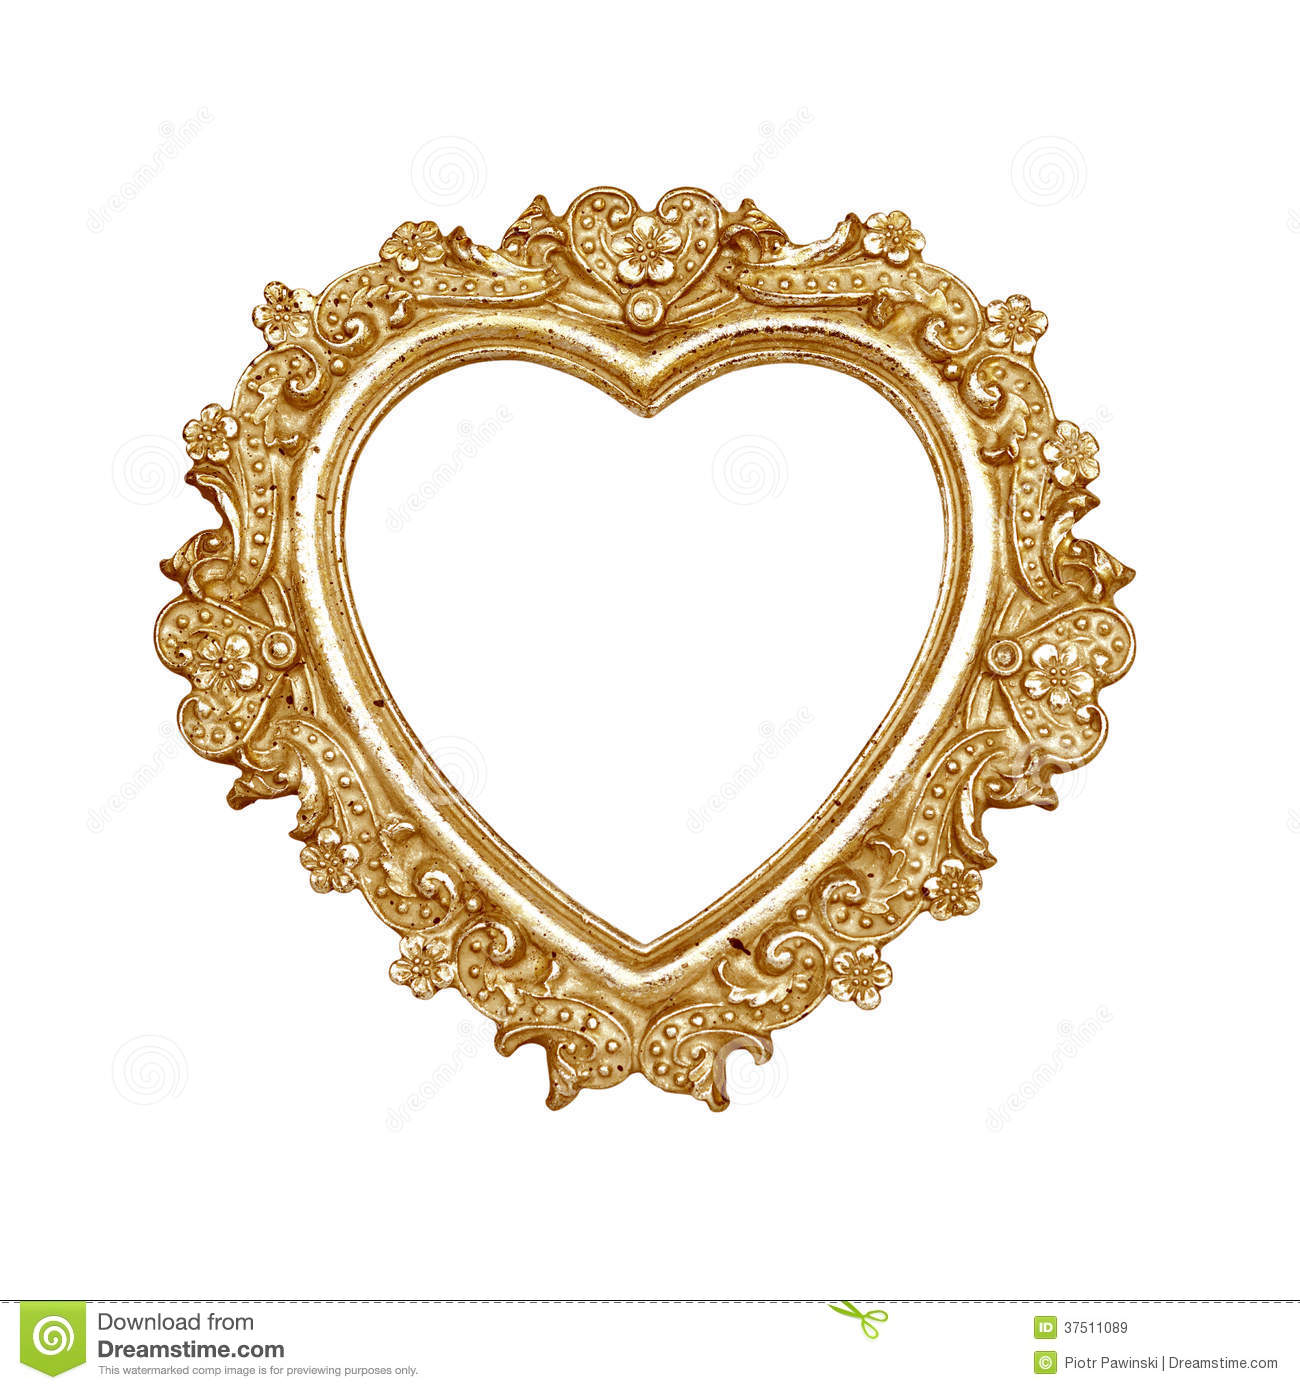 Old Gold Heart Picture Frame Stock Image - Image of pattern ...